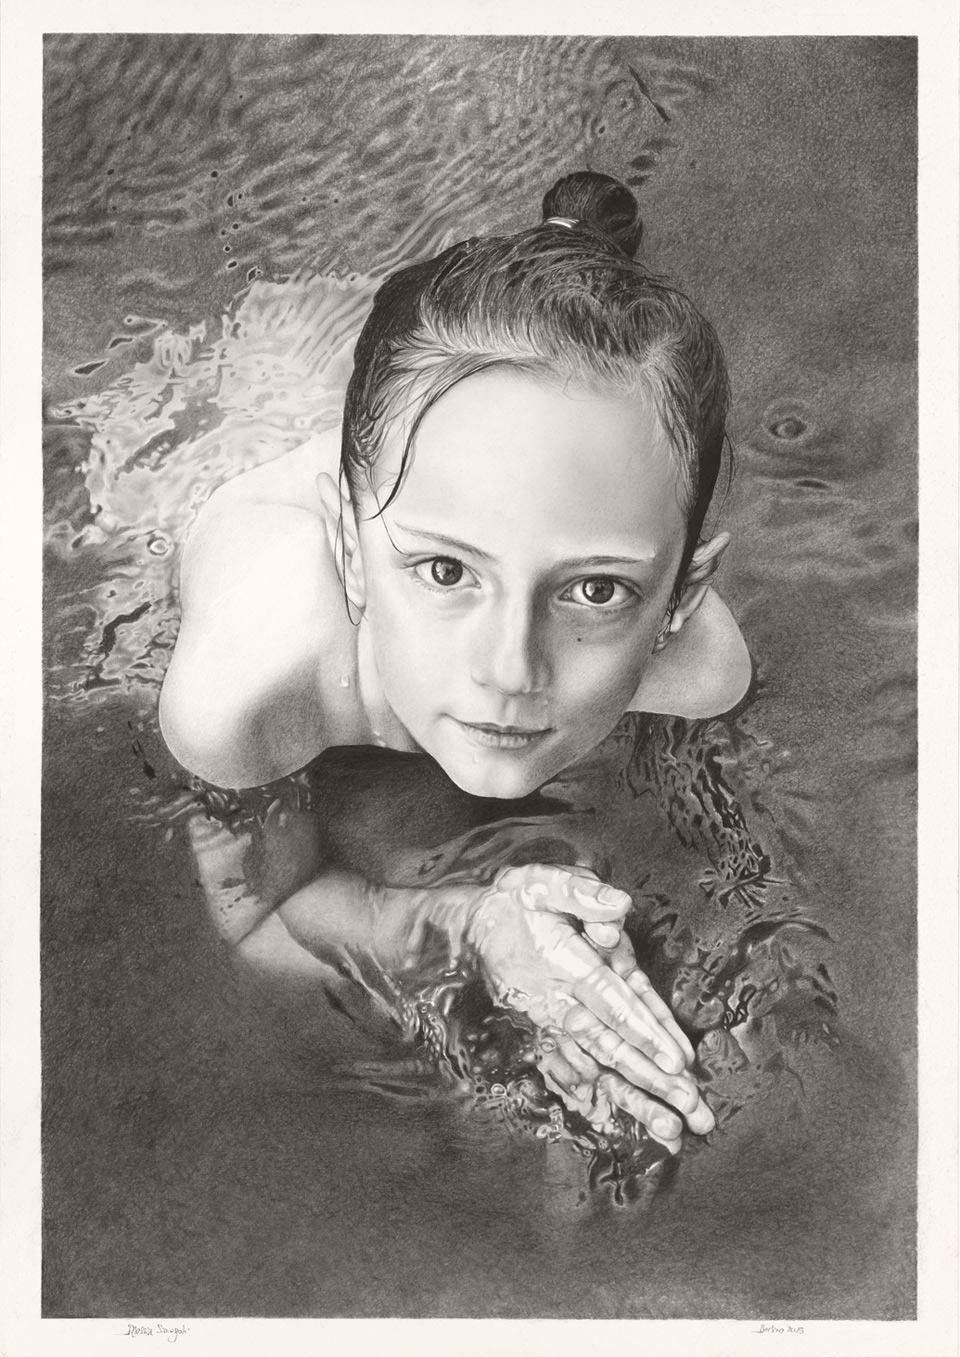 wd-alessia_sinopoli_deep_in_soul_pencil_on_paper_mini